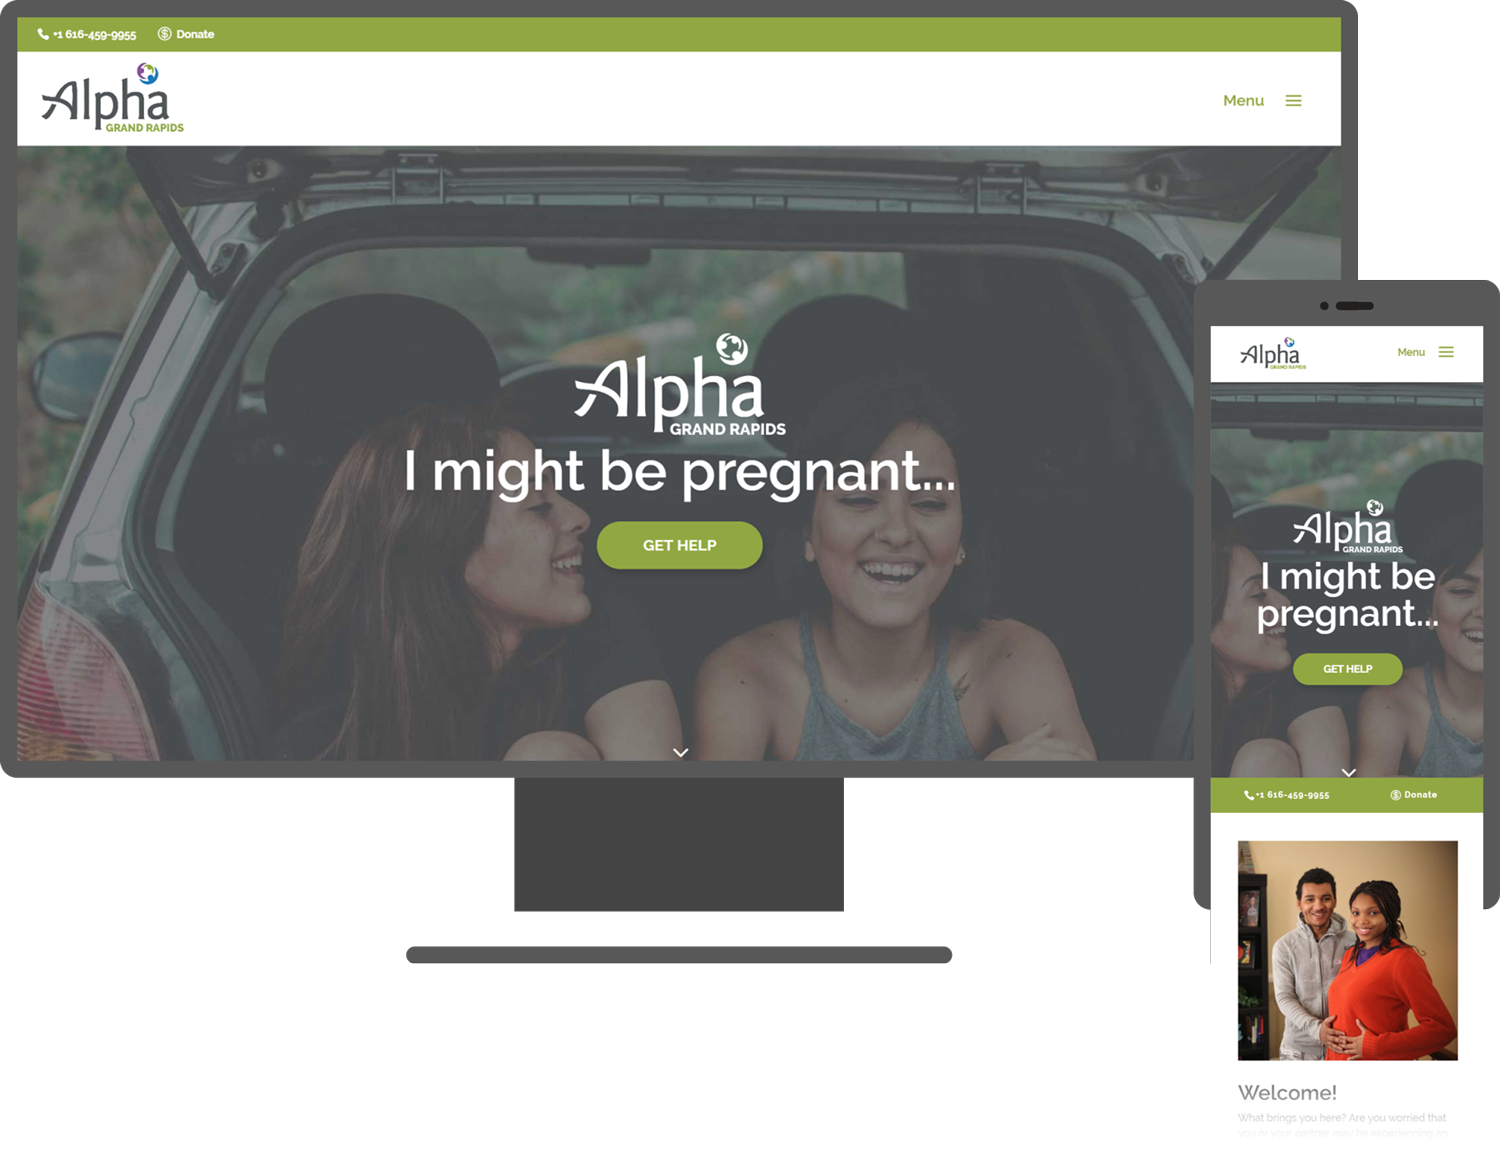 alpha website mock up